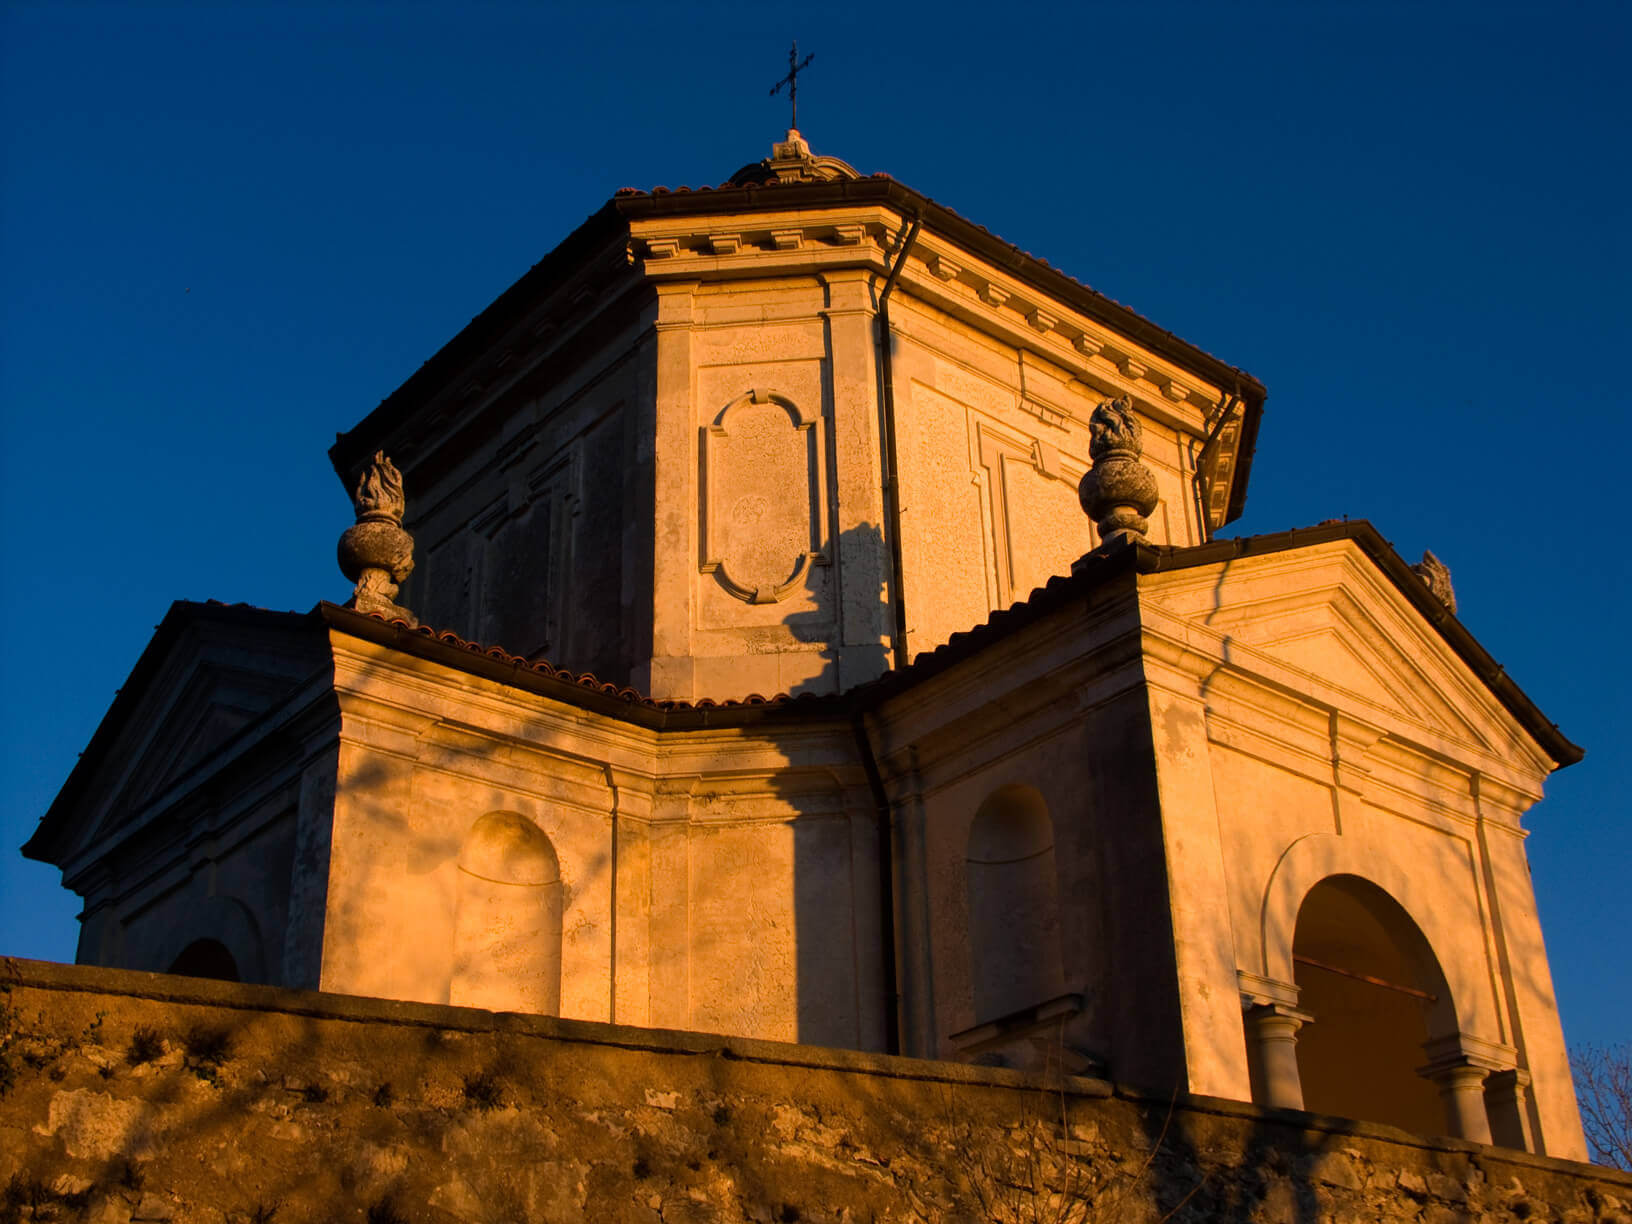 Chapel at Sacro Monte of Varese